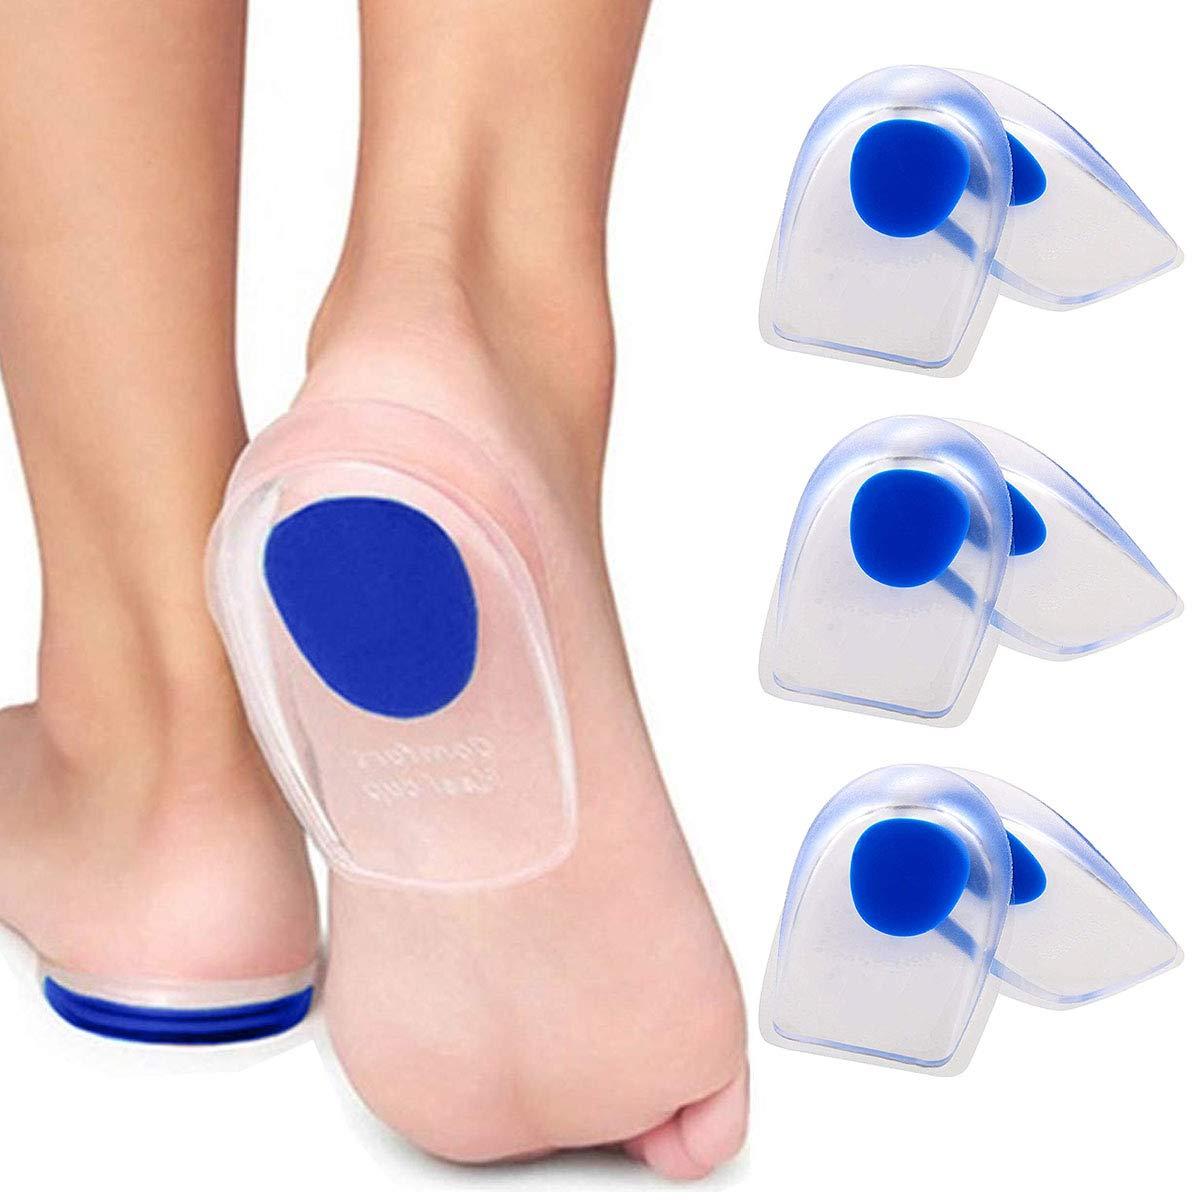 3 Pair Gel Heel Cups Plantar Fasciitis Inserts - Silicone Gel Heel Pads for Heel Pain, Bone Spur & Achilles Pain, Gel Heel Cushions and Cups, Pad & Shock Absorbing Support(Blue Small) by ENERFOOT